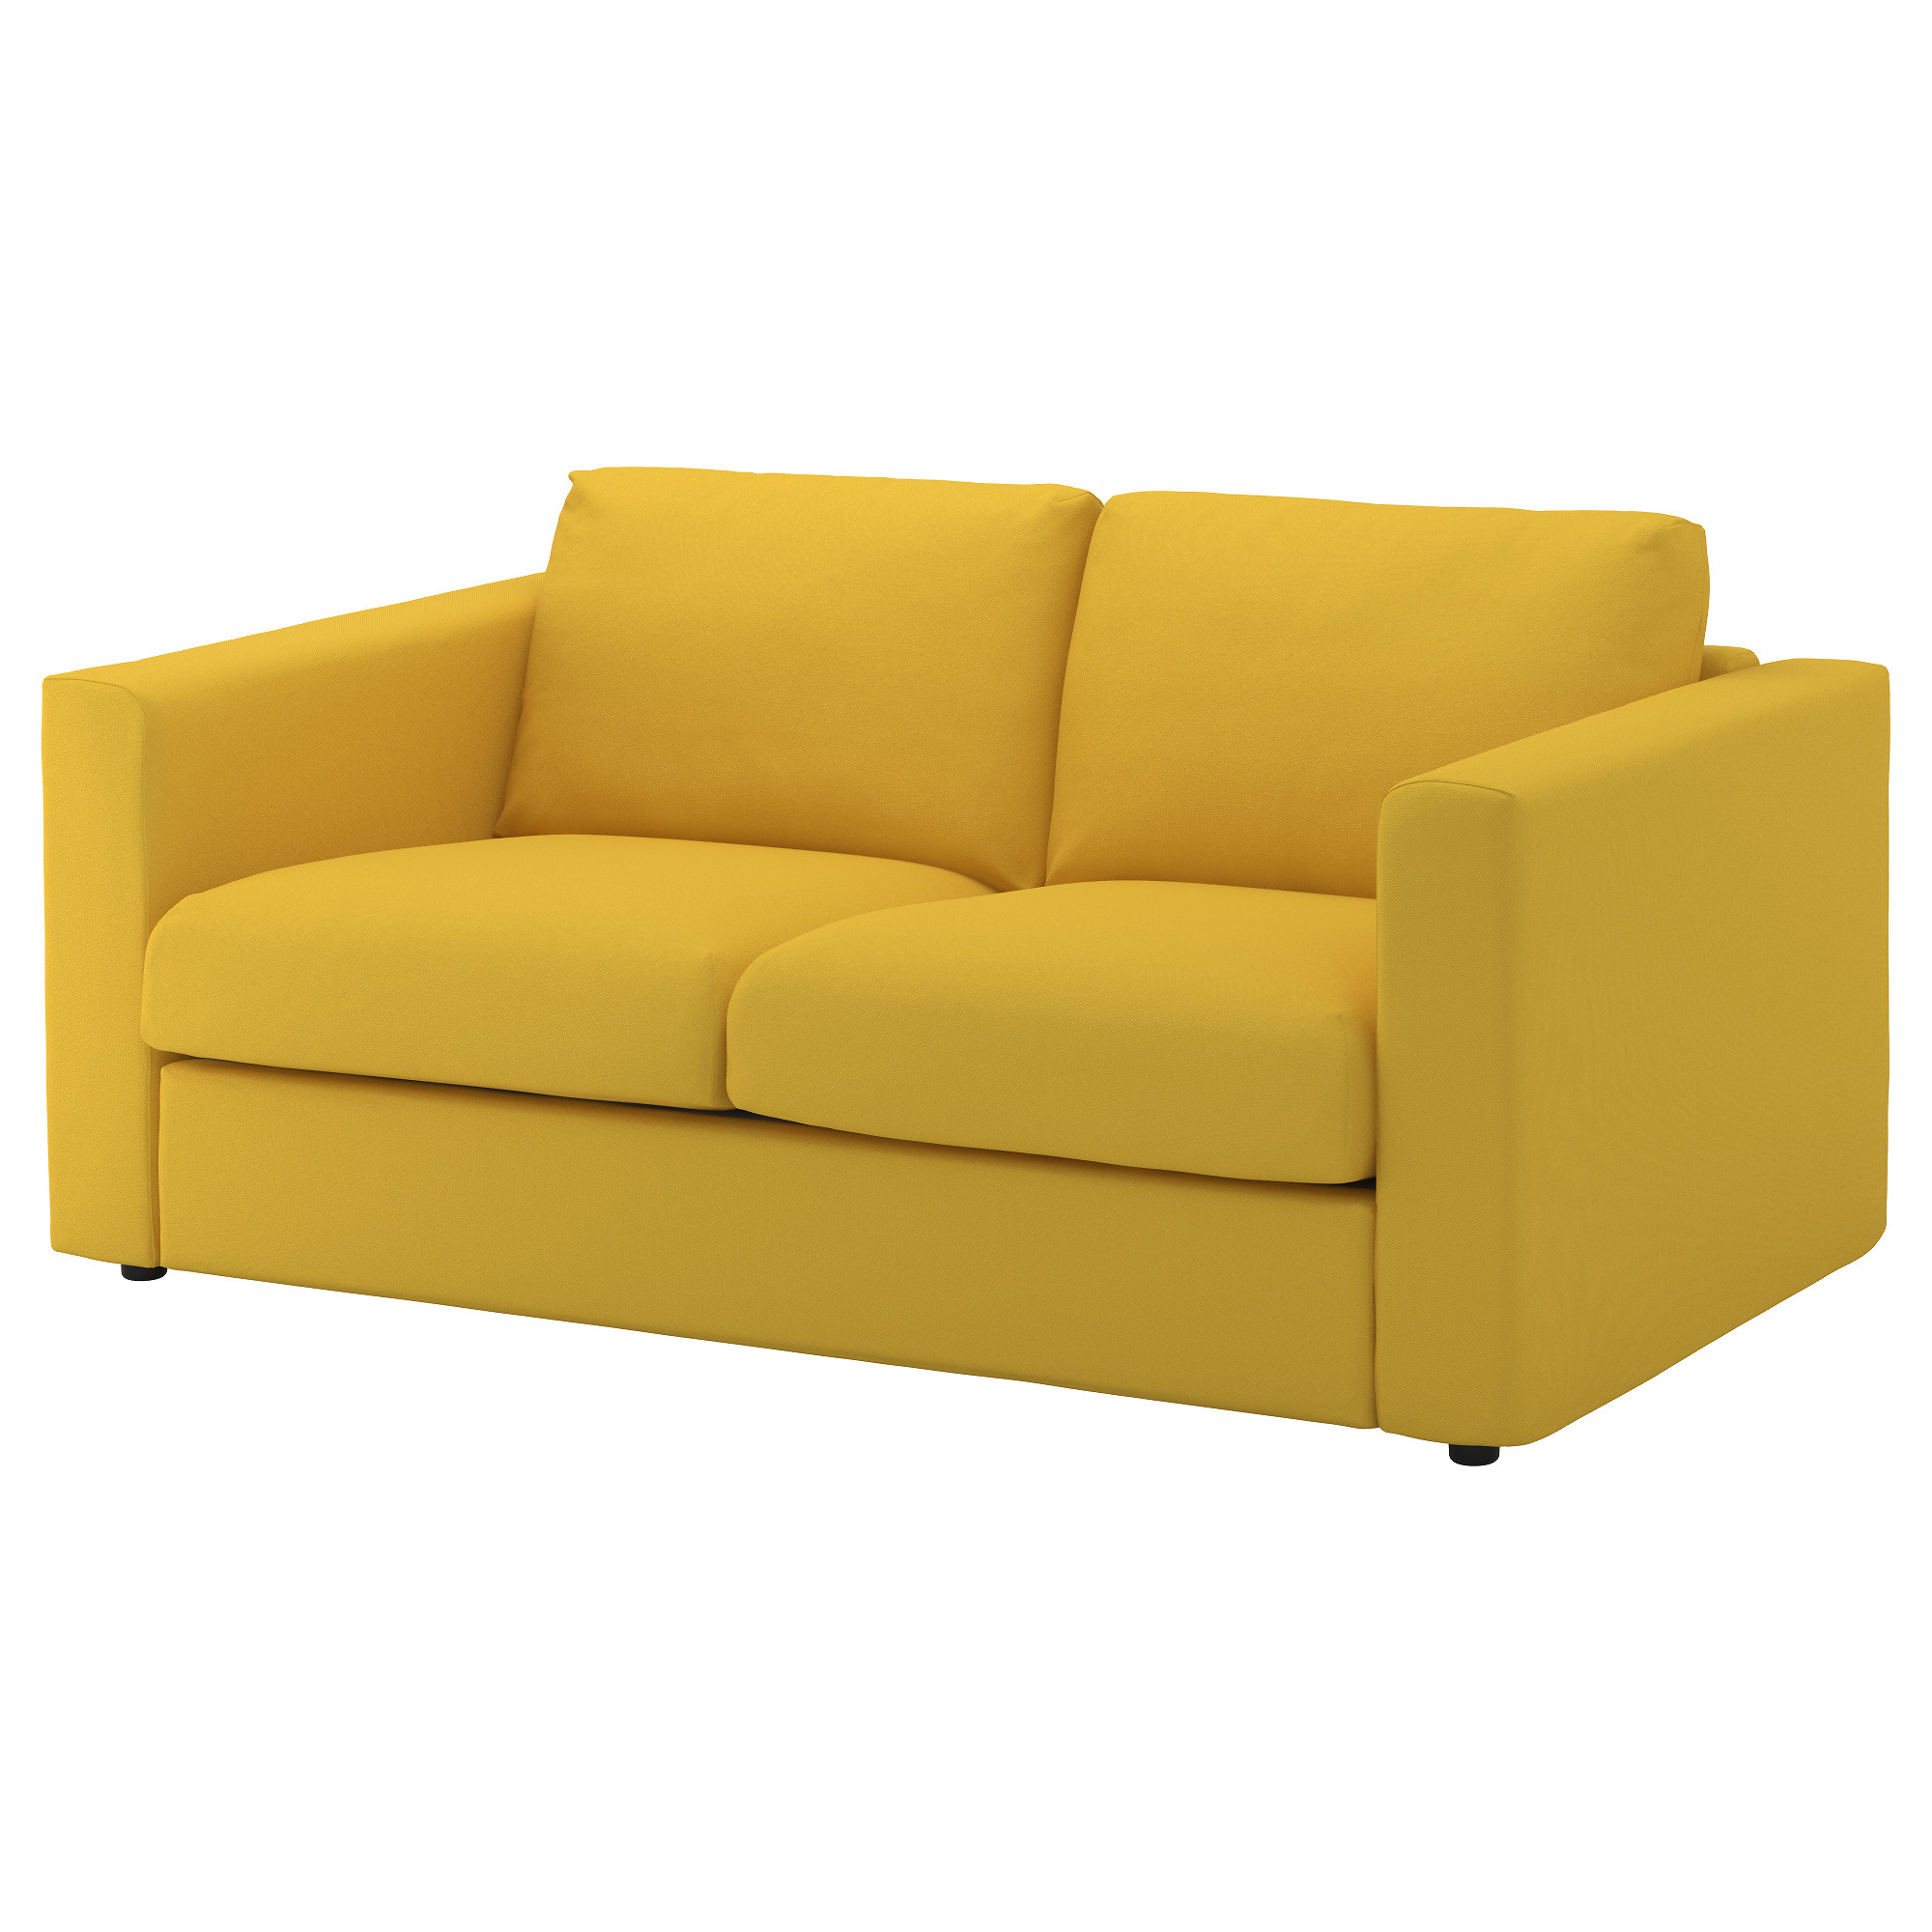 2 seater sofa ikea vimle 2-seat sofa the cover is easy to keep clean since it FMBWICY